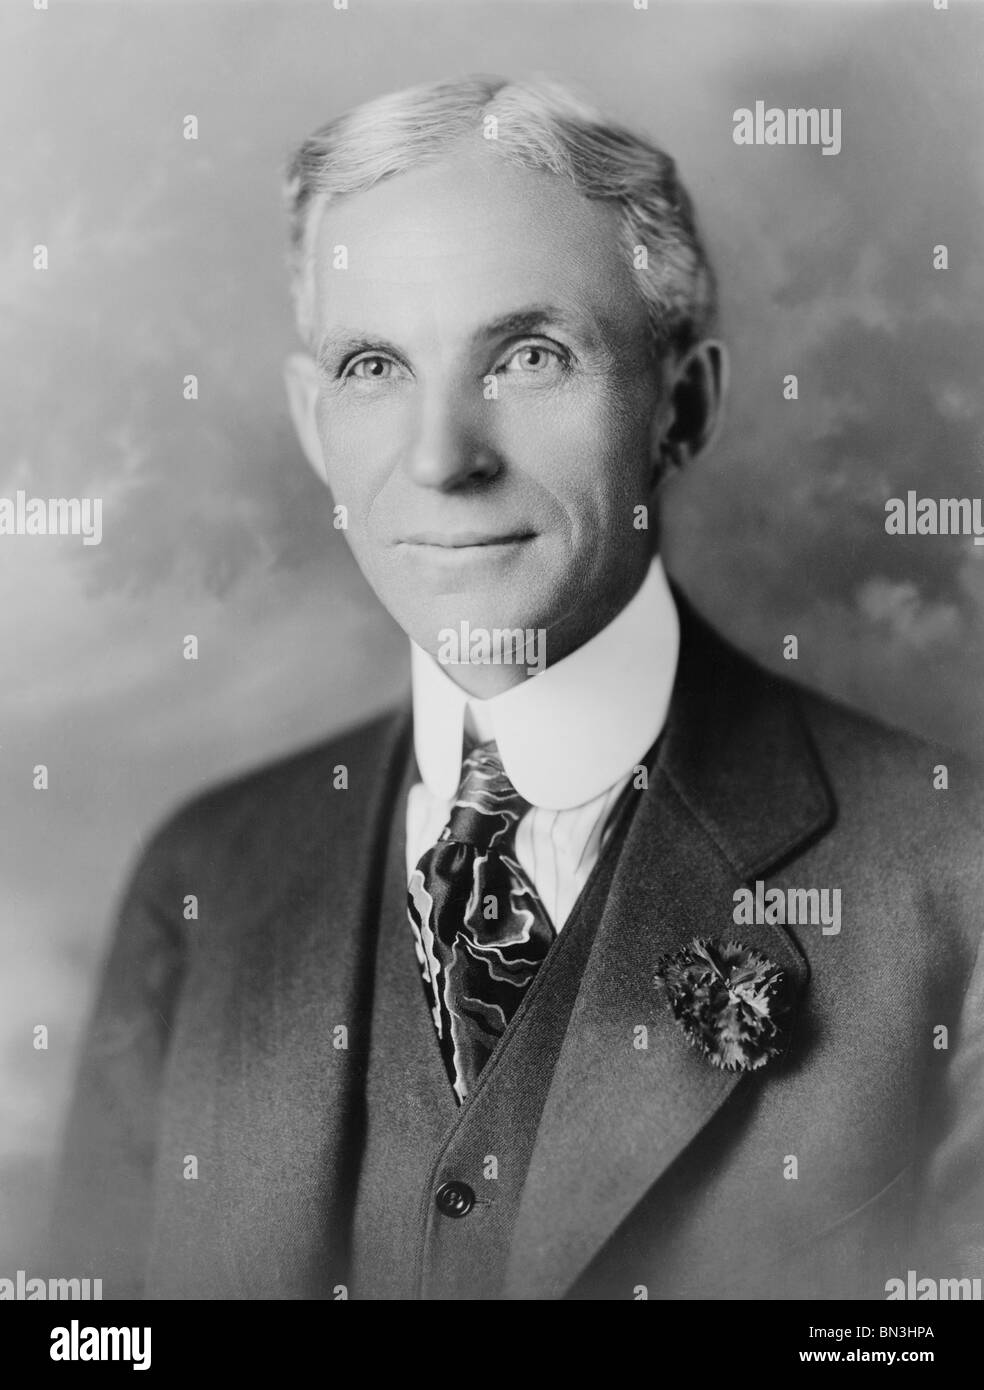 Portrait photo circa 1910s of American businessman Henry Ford (1863 - 1947) - founder of the Ford Motor Company. - Stock Image